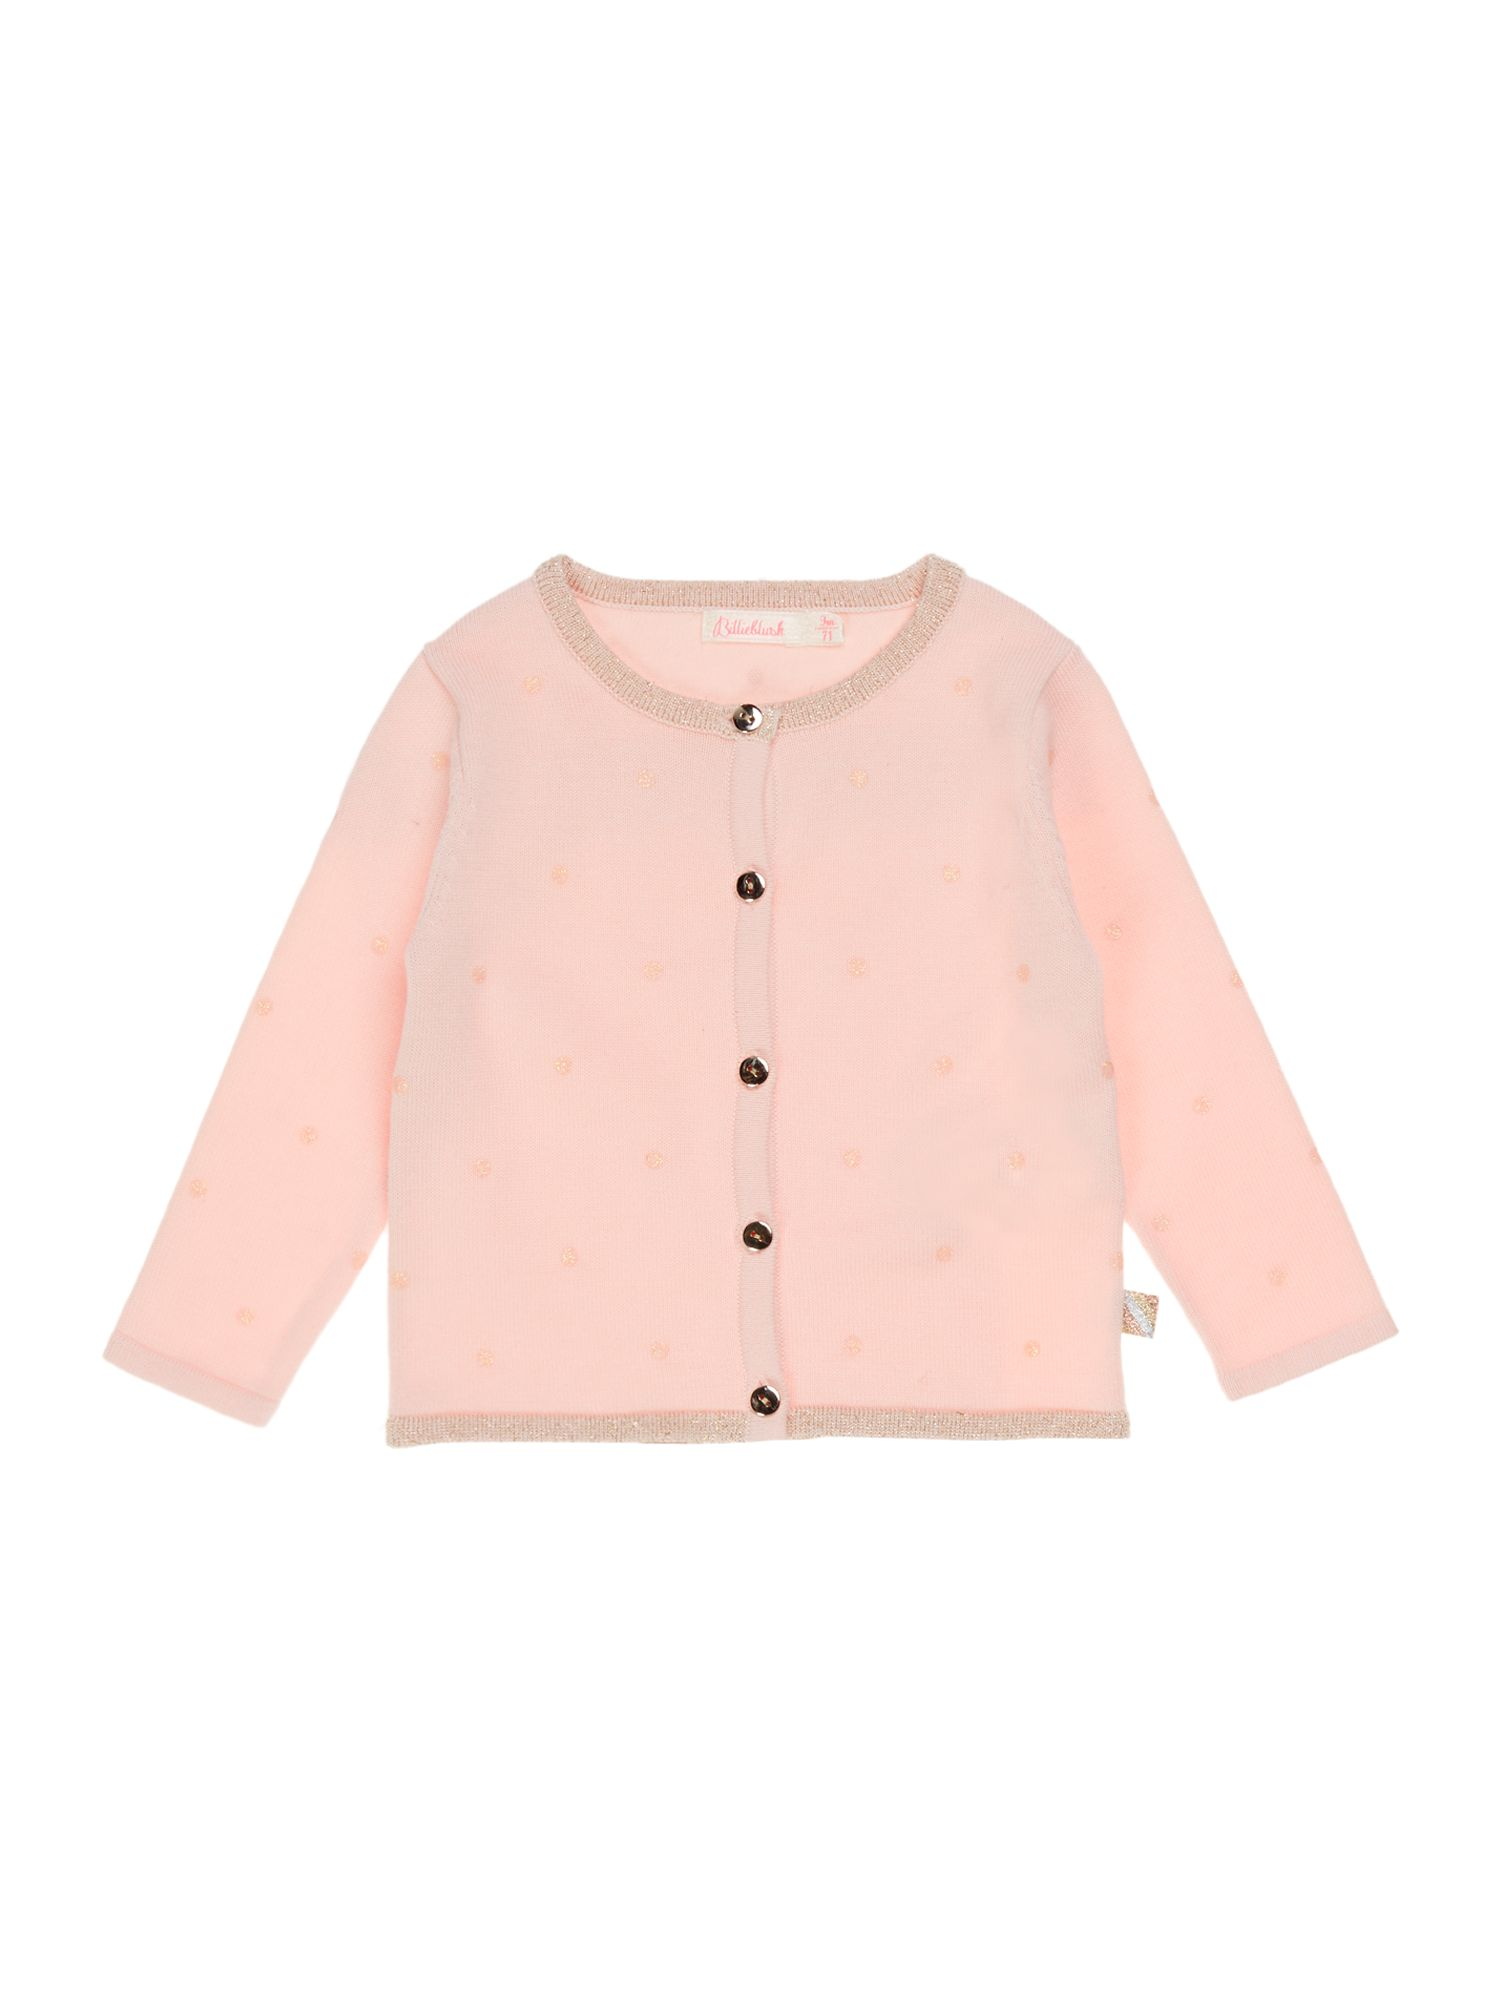 Billieblush Billieblush Girls Knitted Cardigan, Pink